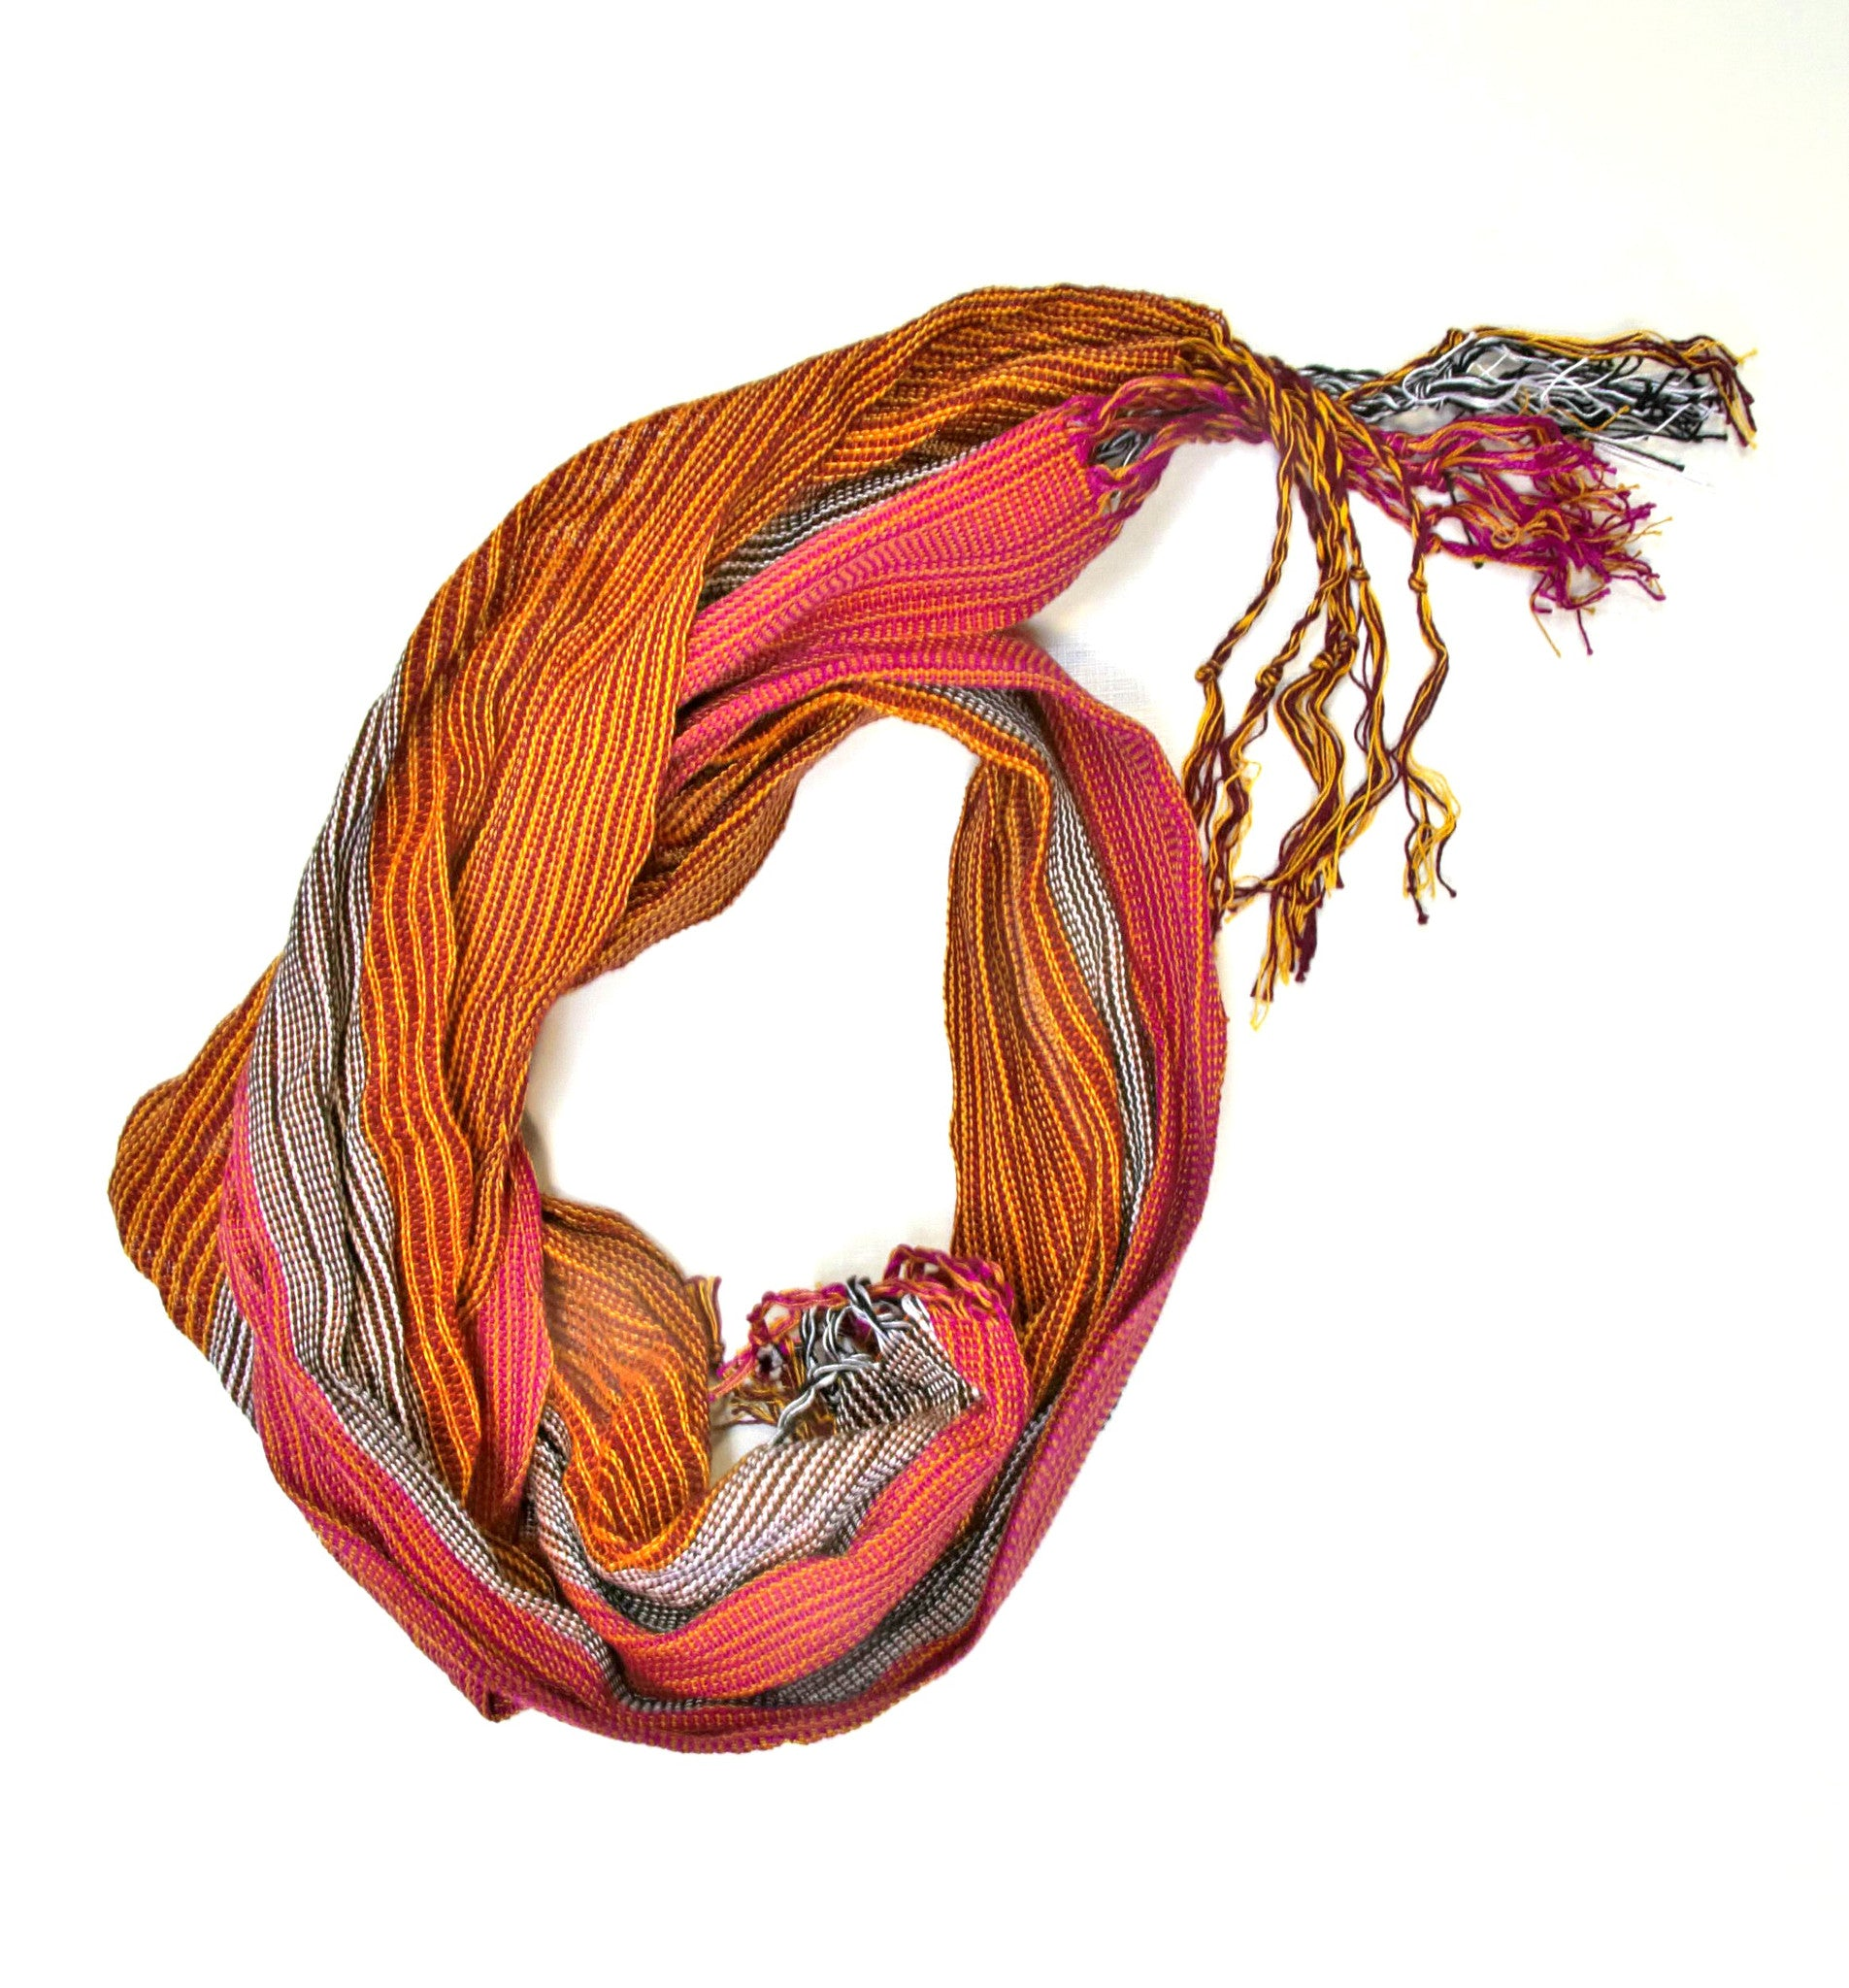 The Goddess handwoven cotton Skinny scarf